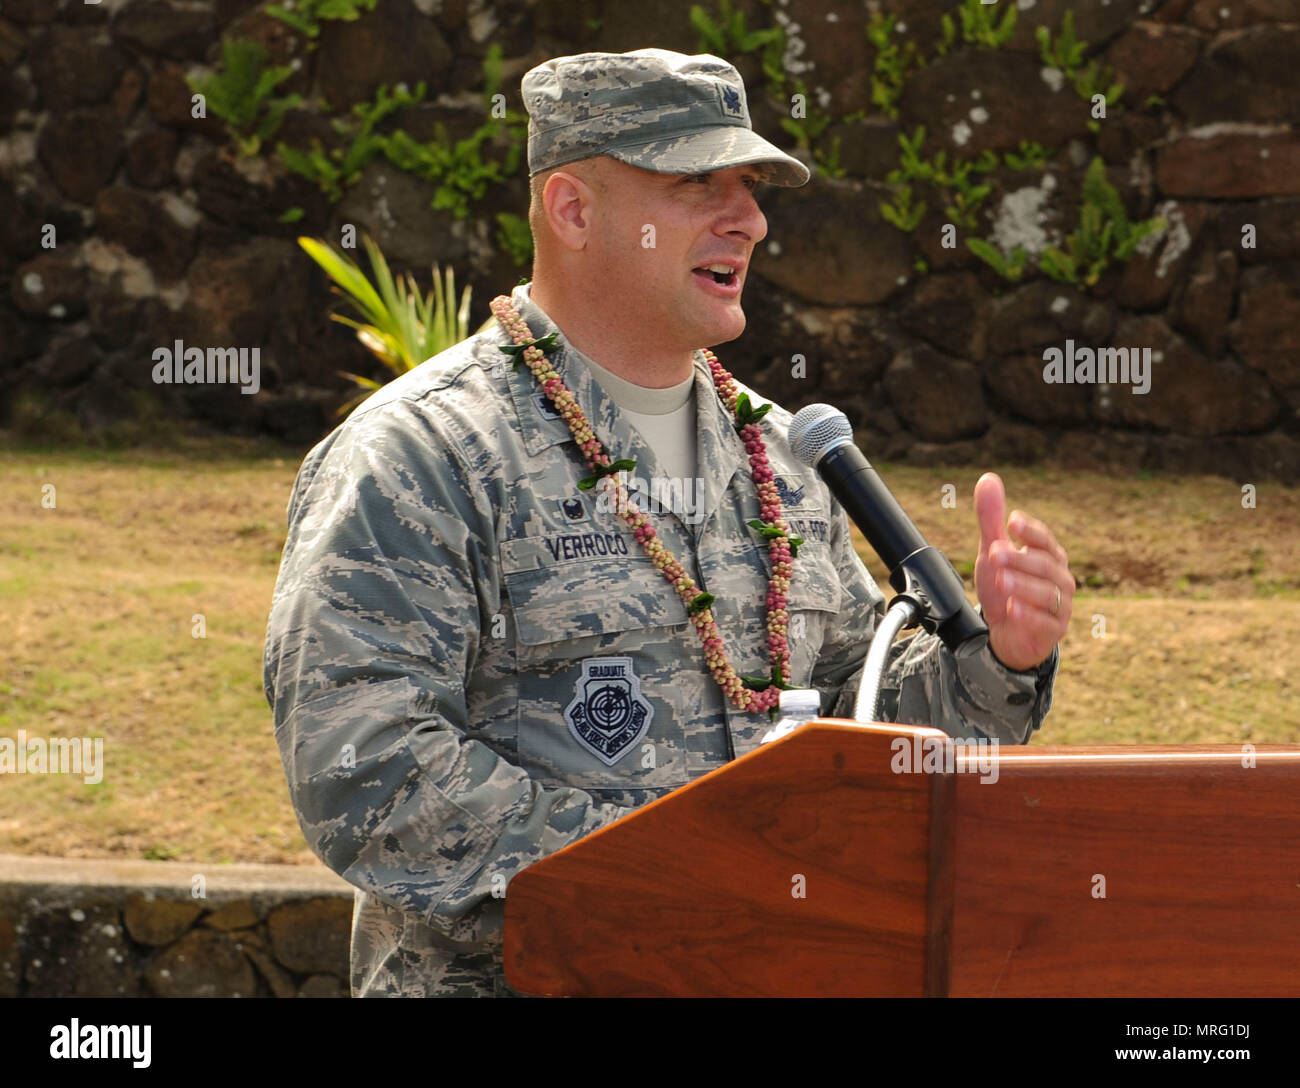 Lt. Col. Phillip Verroco, 21st Space Operations Squadron commander, gives opening comments during the Detachment 3 Change of Command Ceremony, Kaena Point, Hawaii, June 9, 2017.  Detachment 3 is a component of the 21st Space Operations Squadron, 50th Network Operations Group, 50th Space Wing, and is located on the western tip of Oahu.  It is the oldest and one of seven worldwide remote tracking stations in the Air Force Satellite Control Network.  (U.S. Air Force photo by Tech. Sgt. Heather Redman) - Stock Image